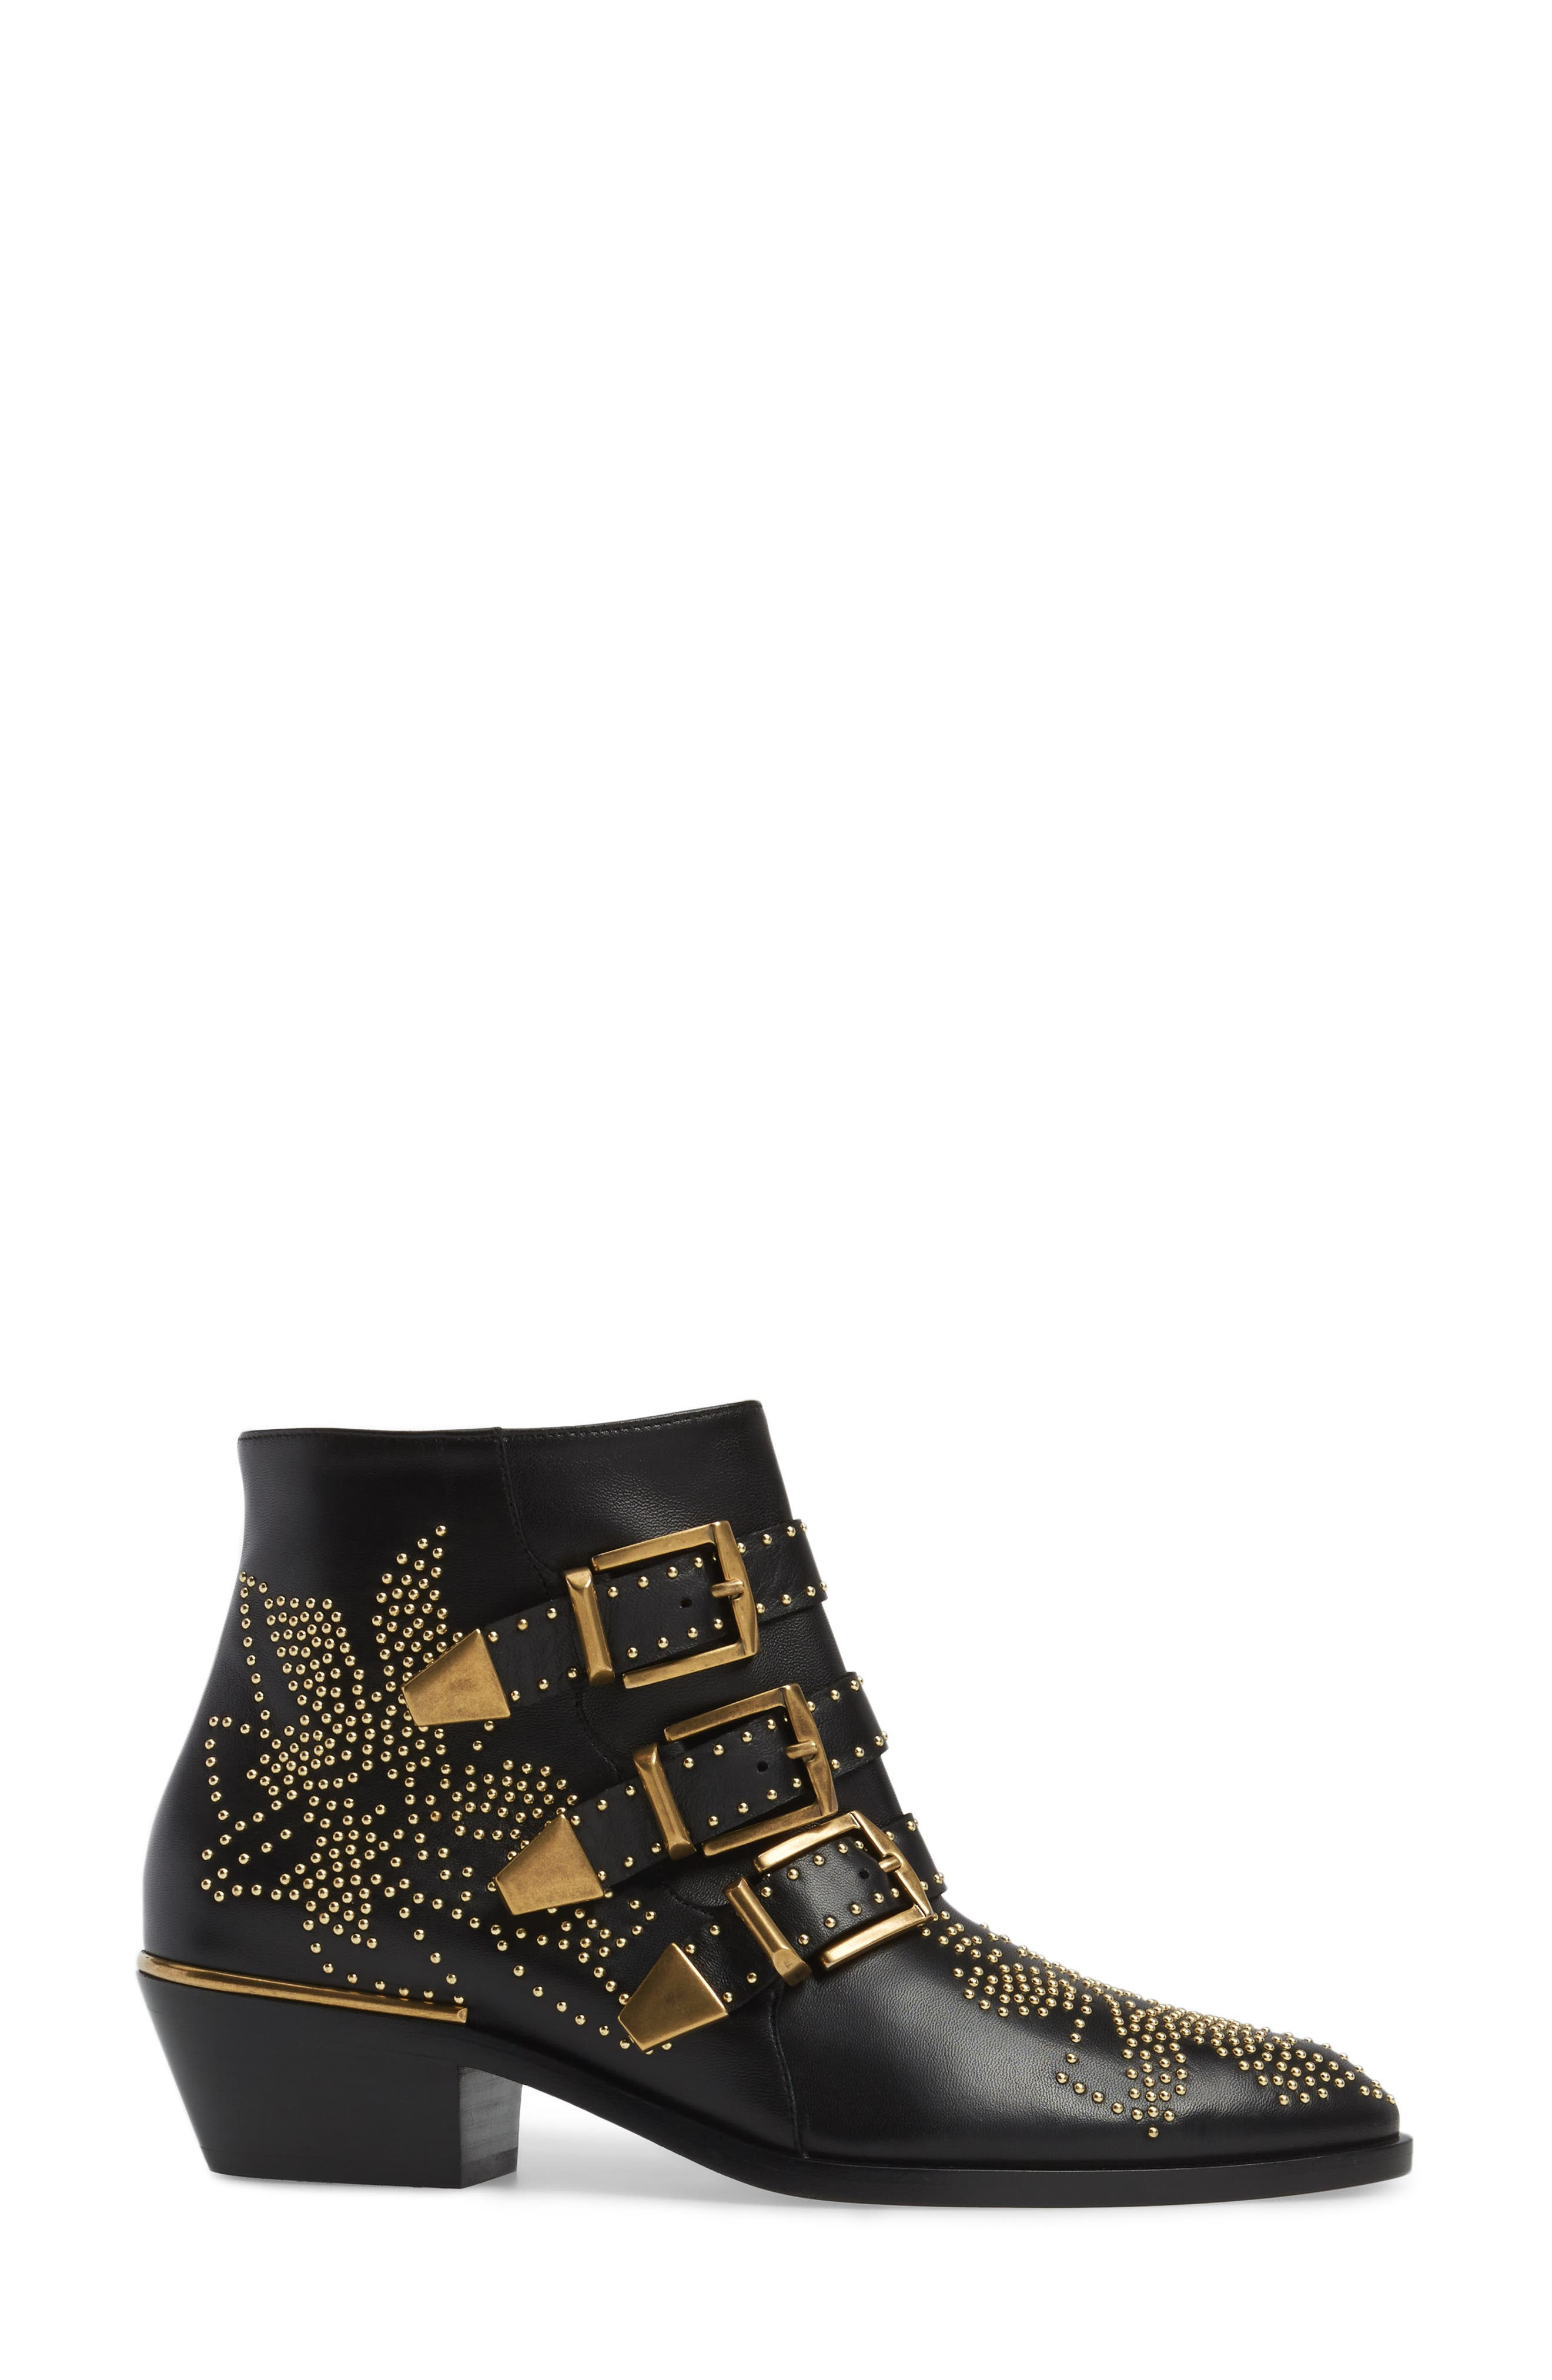 CHLOÉ, Susanna Stud Buckle Bootie, Alternate thumbnail 3, color, BLACK GOLD LEATHER